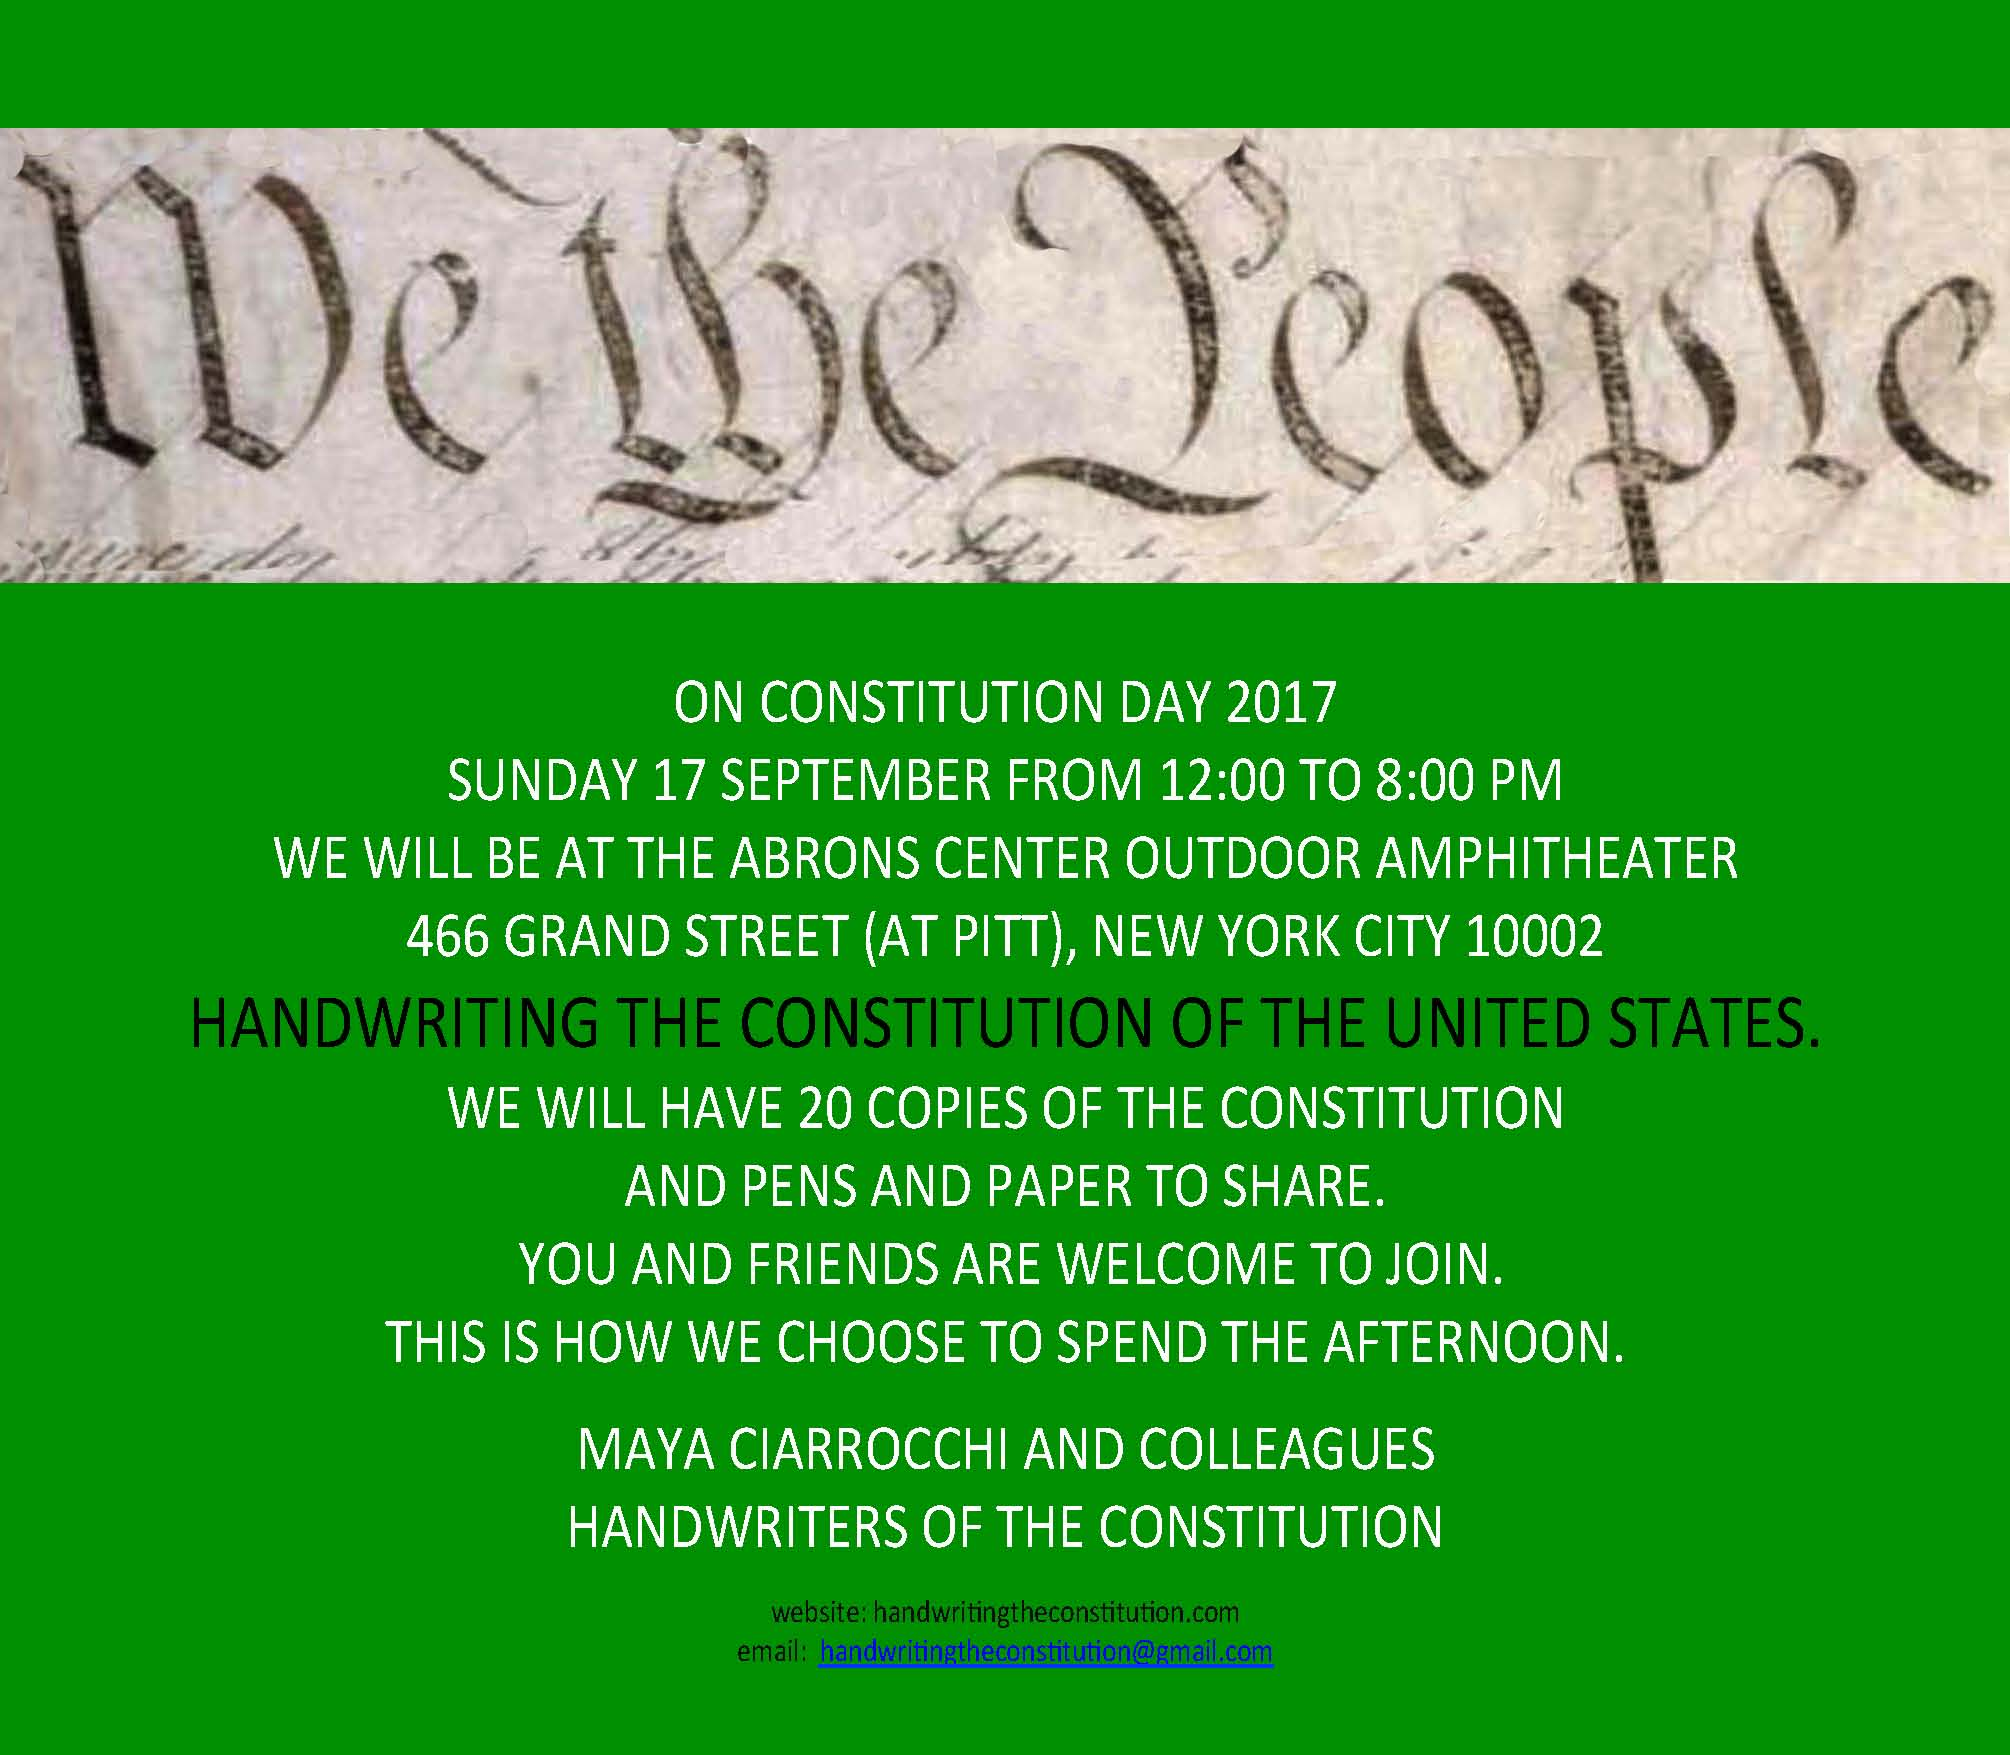 17 SEPTEMBER 2017CONSTITUTION DAYNEW YORK CITY  - COLLABORATOR MAYA CIARROCCHI